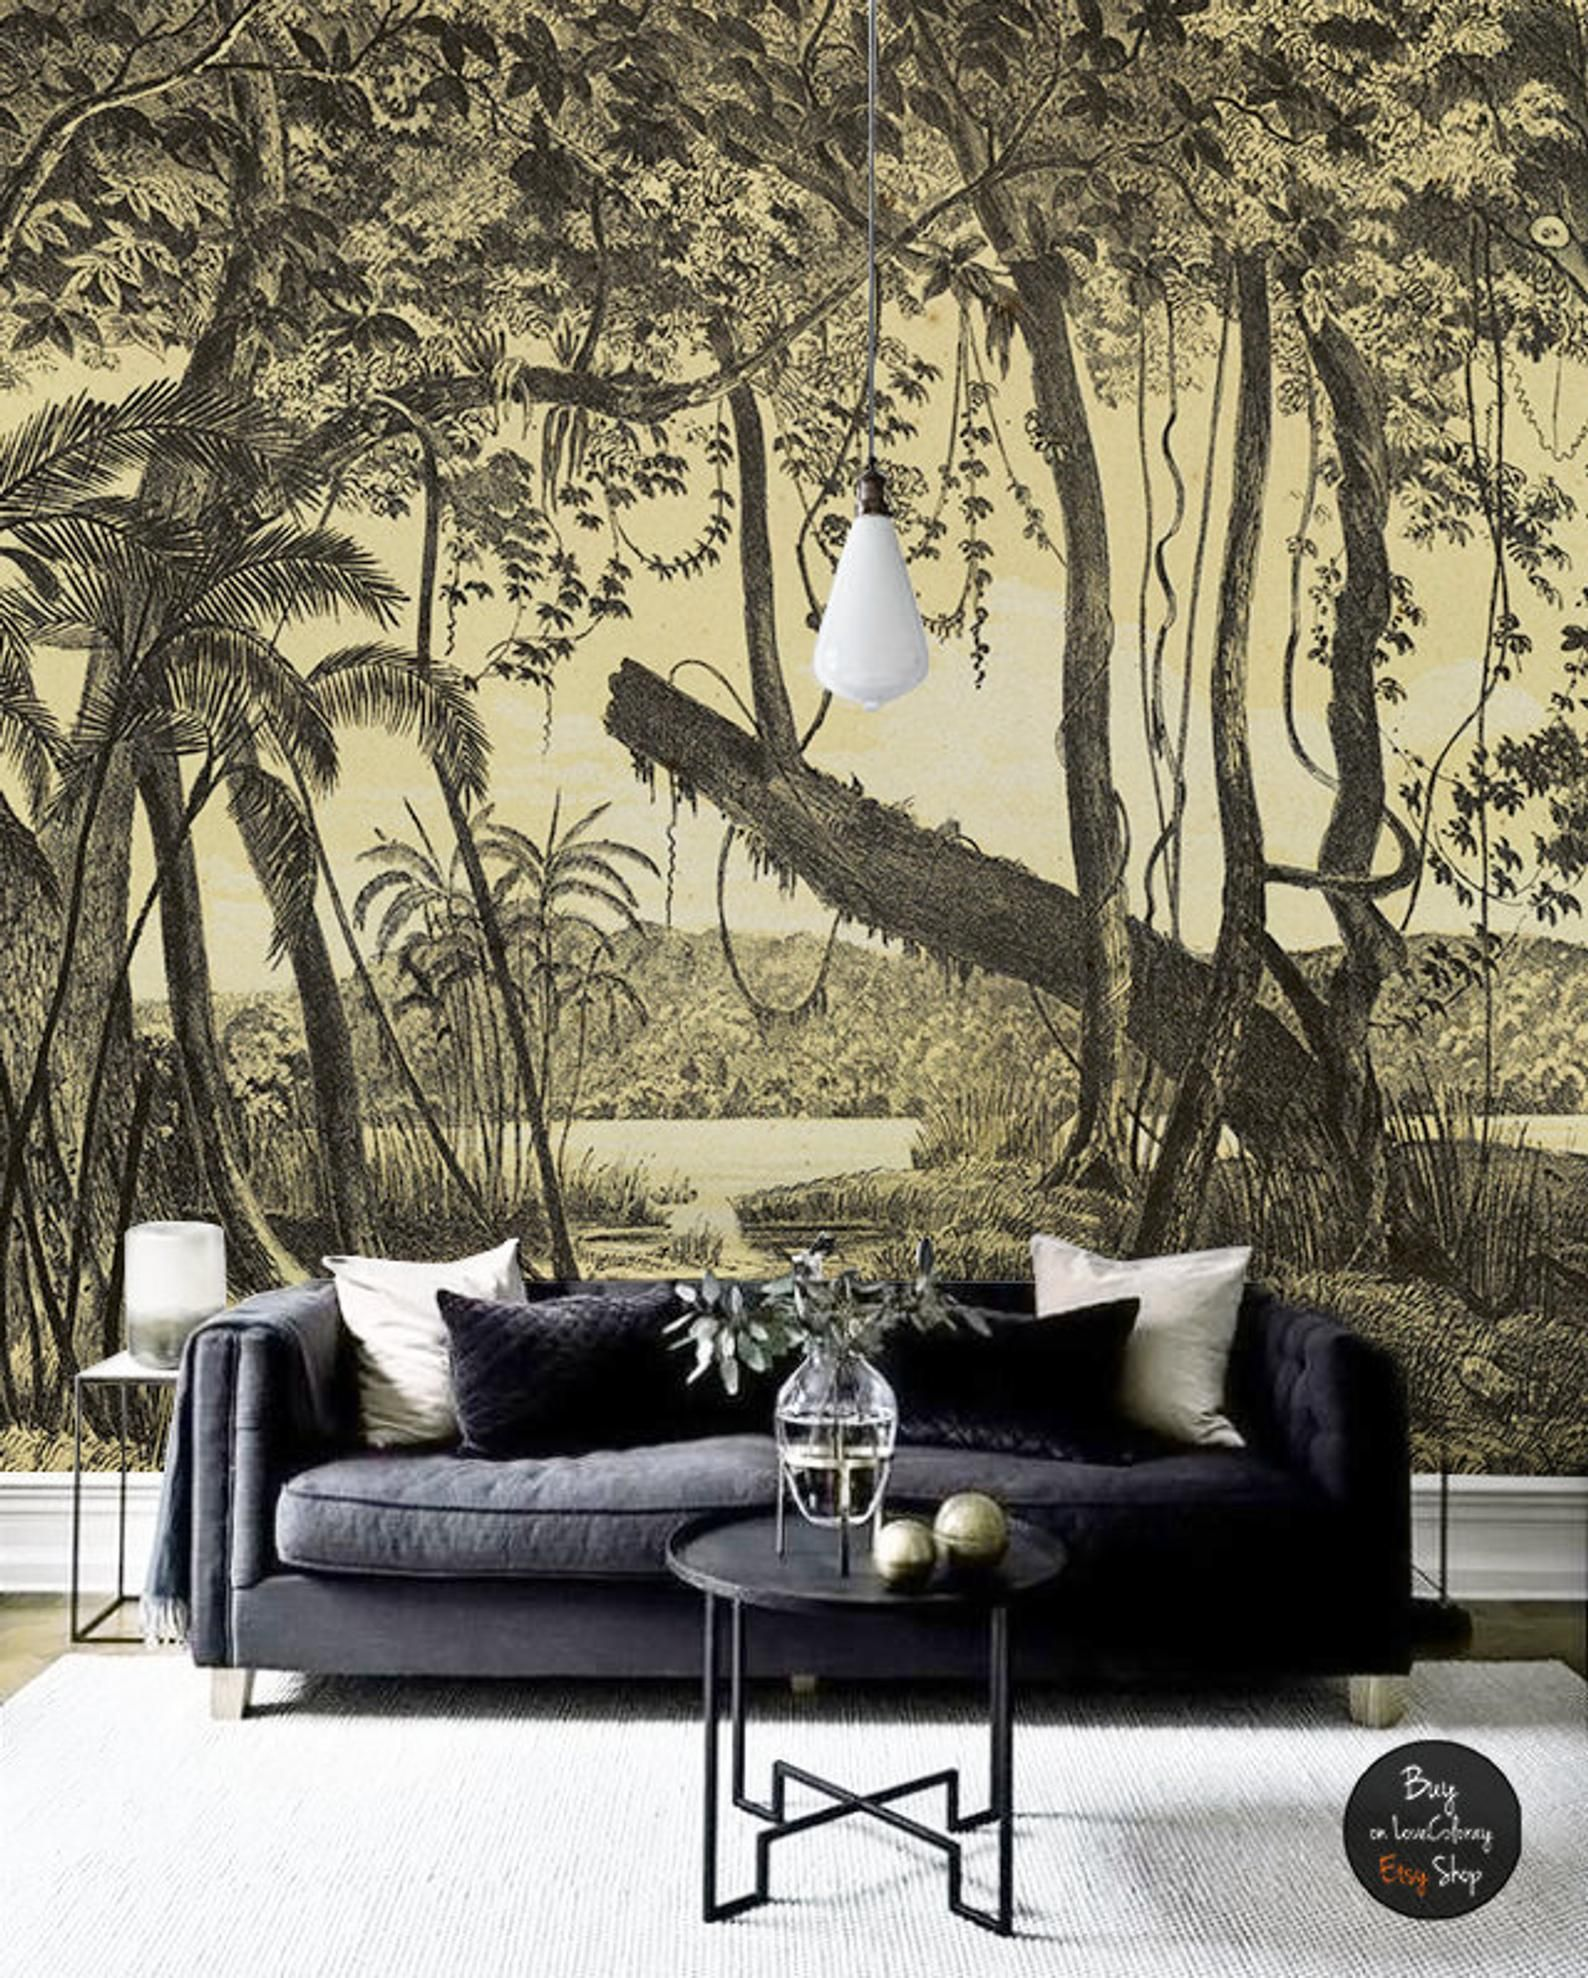 Nature Of South America Removable Wallpaper Peel And Stick Tropical Wall Mural Sketch Wall Art Tropical Wallpaper Jungle Vintage 68 Wall Murals Tropical Wallpaper Mural